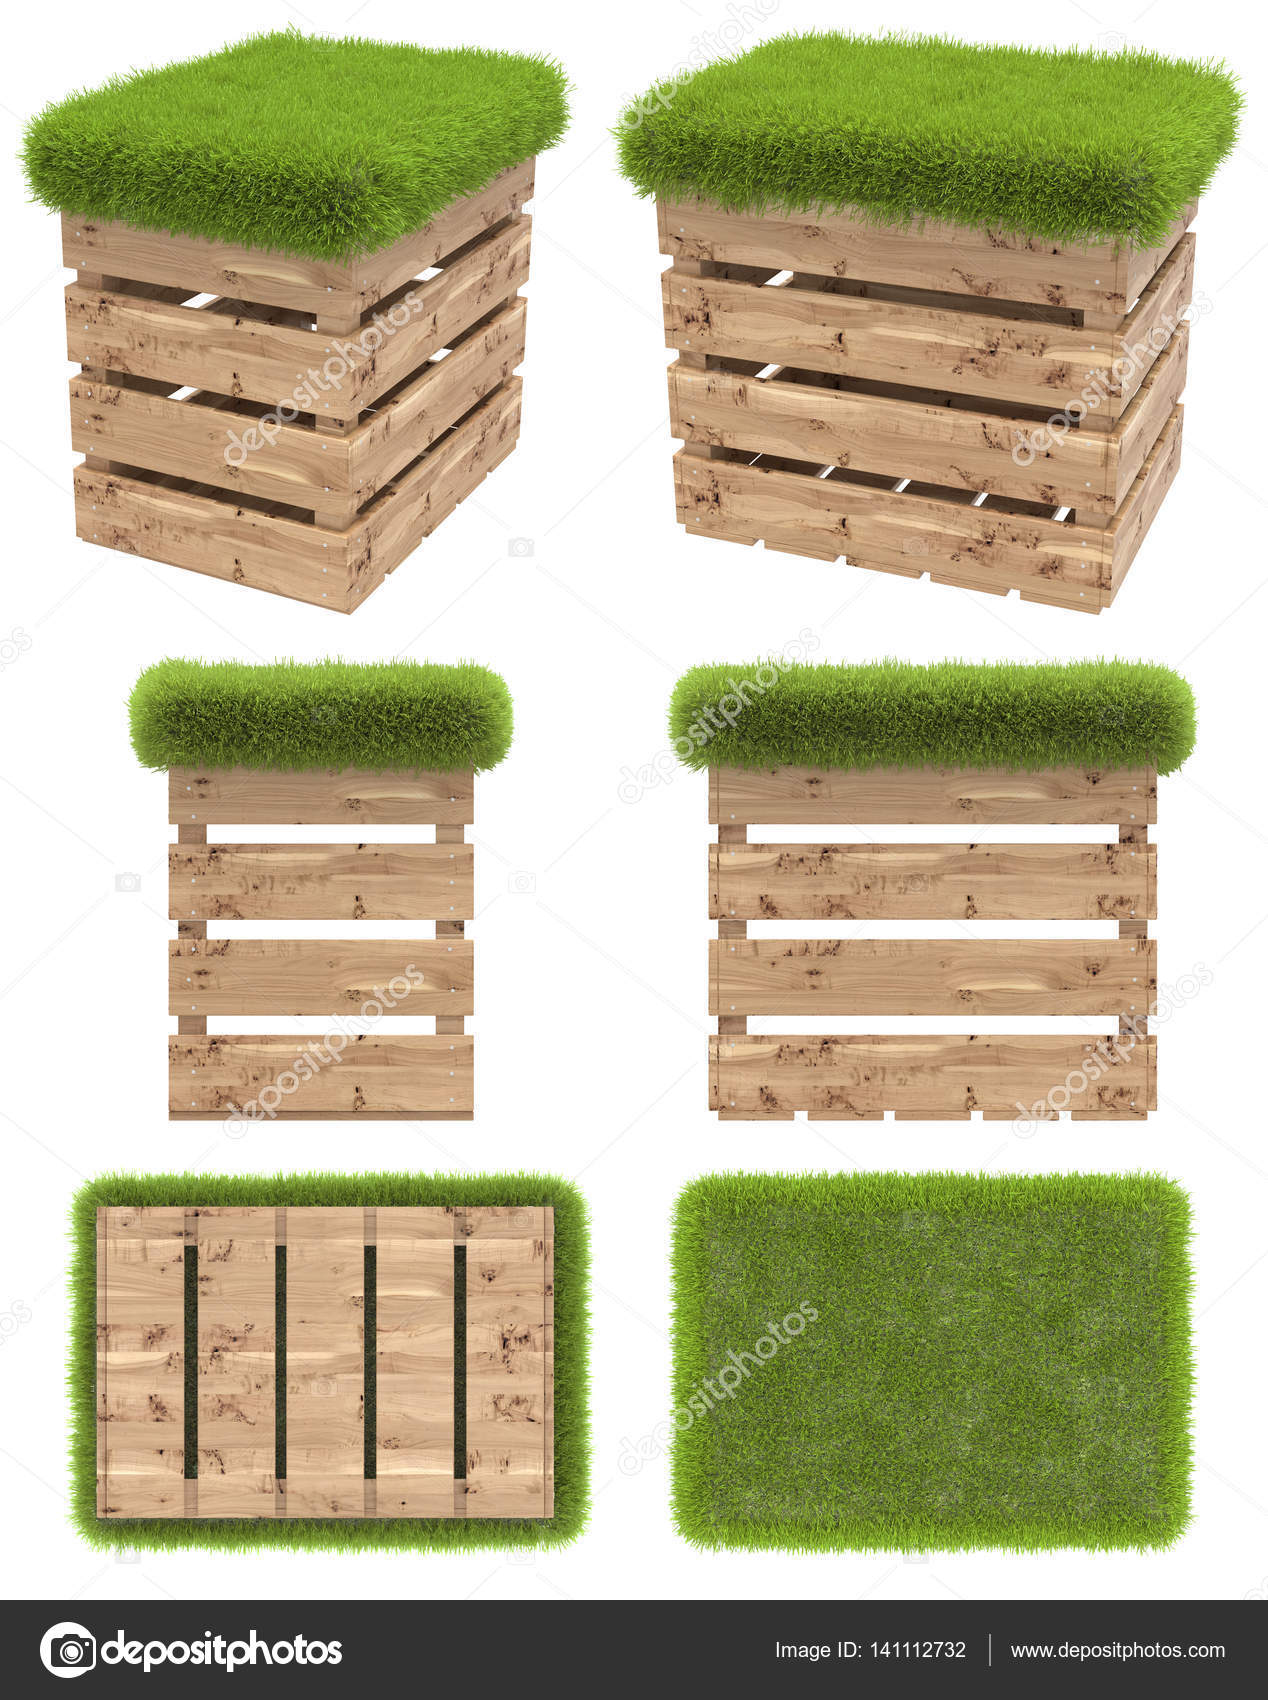 The Chair Of The Wooden Box Or Pallet With A Seat Of Grass. Garden Furniture.  Top View, Side View, Front View, Bottom View. Isolated On White Background.